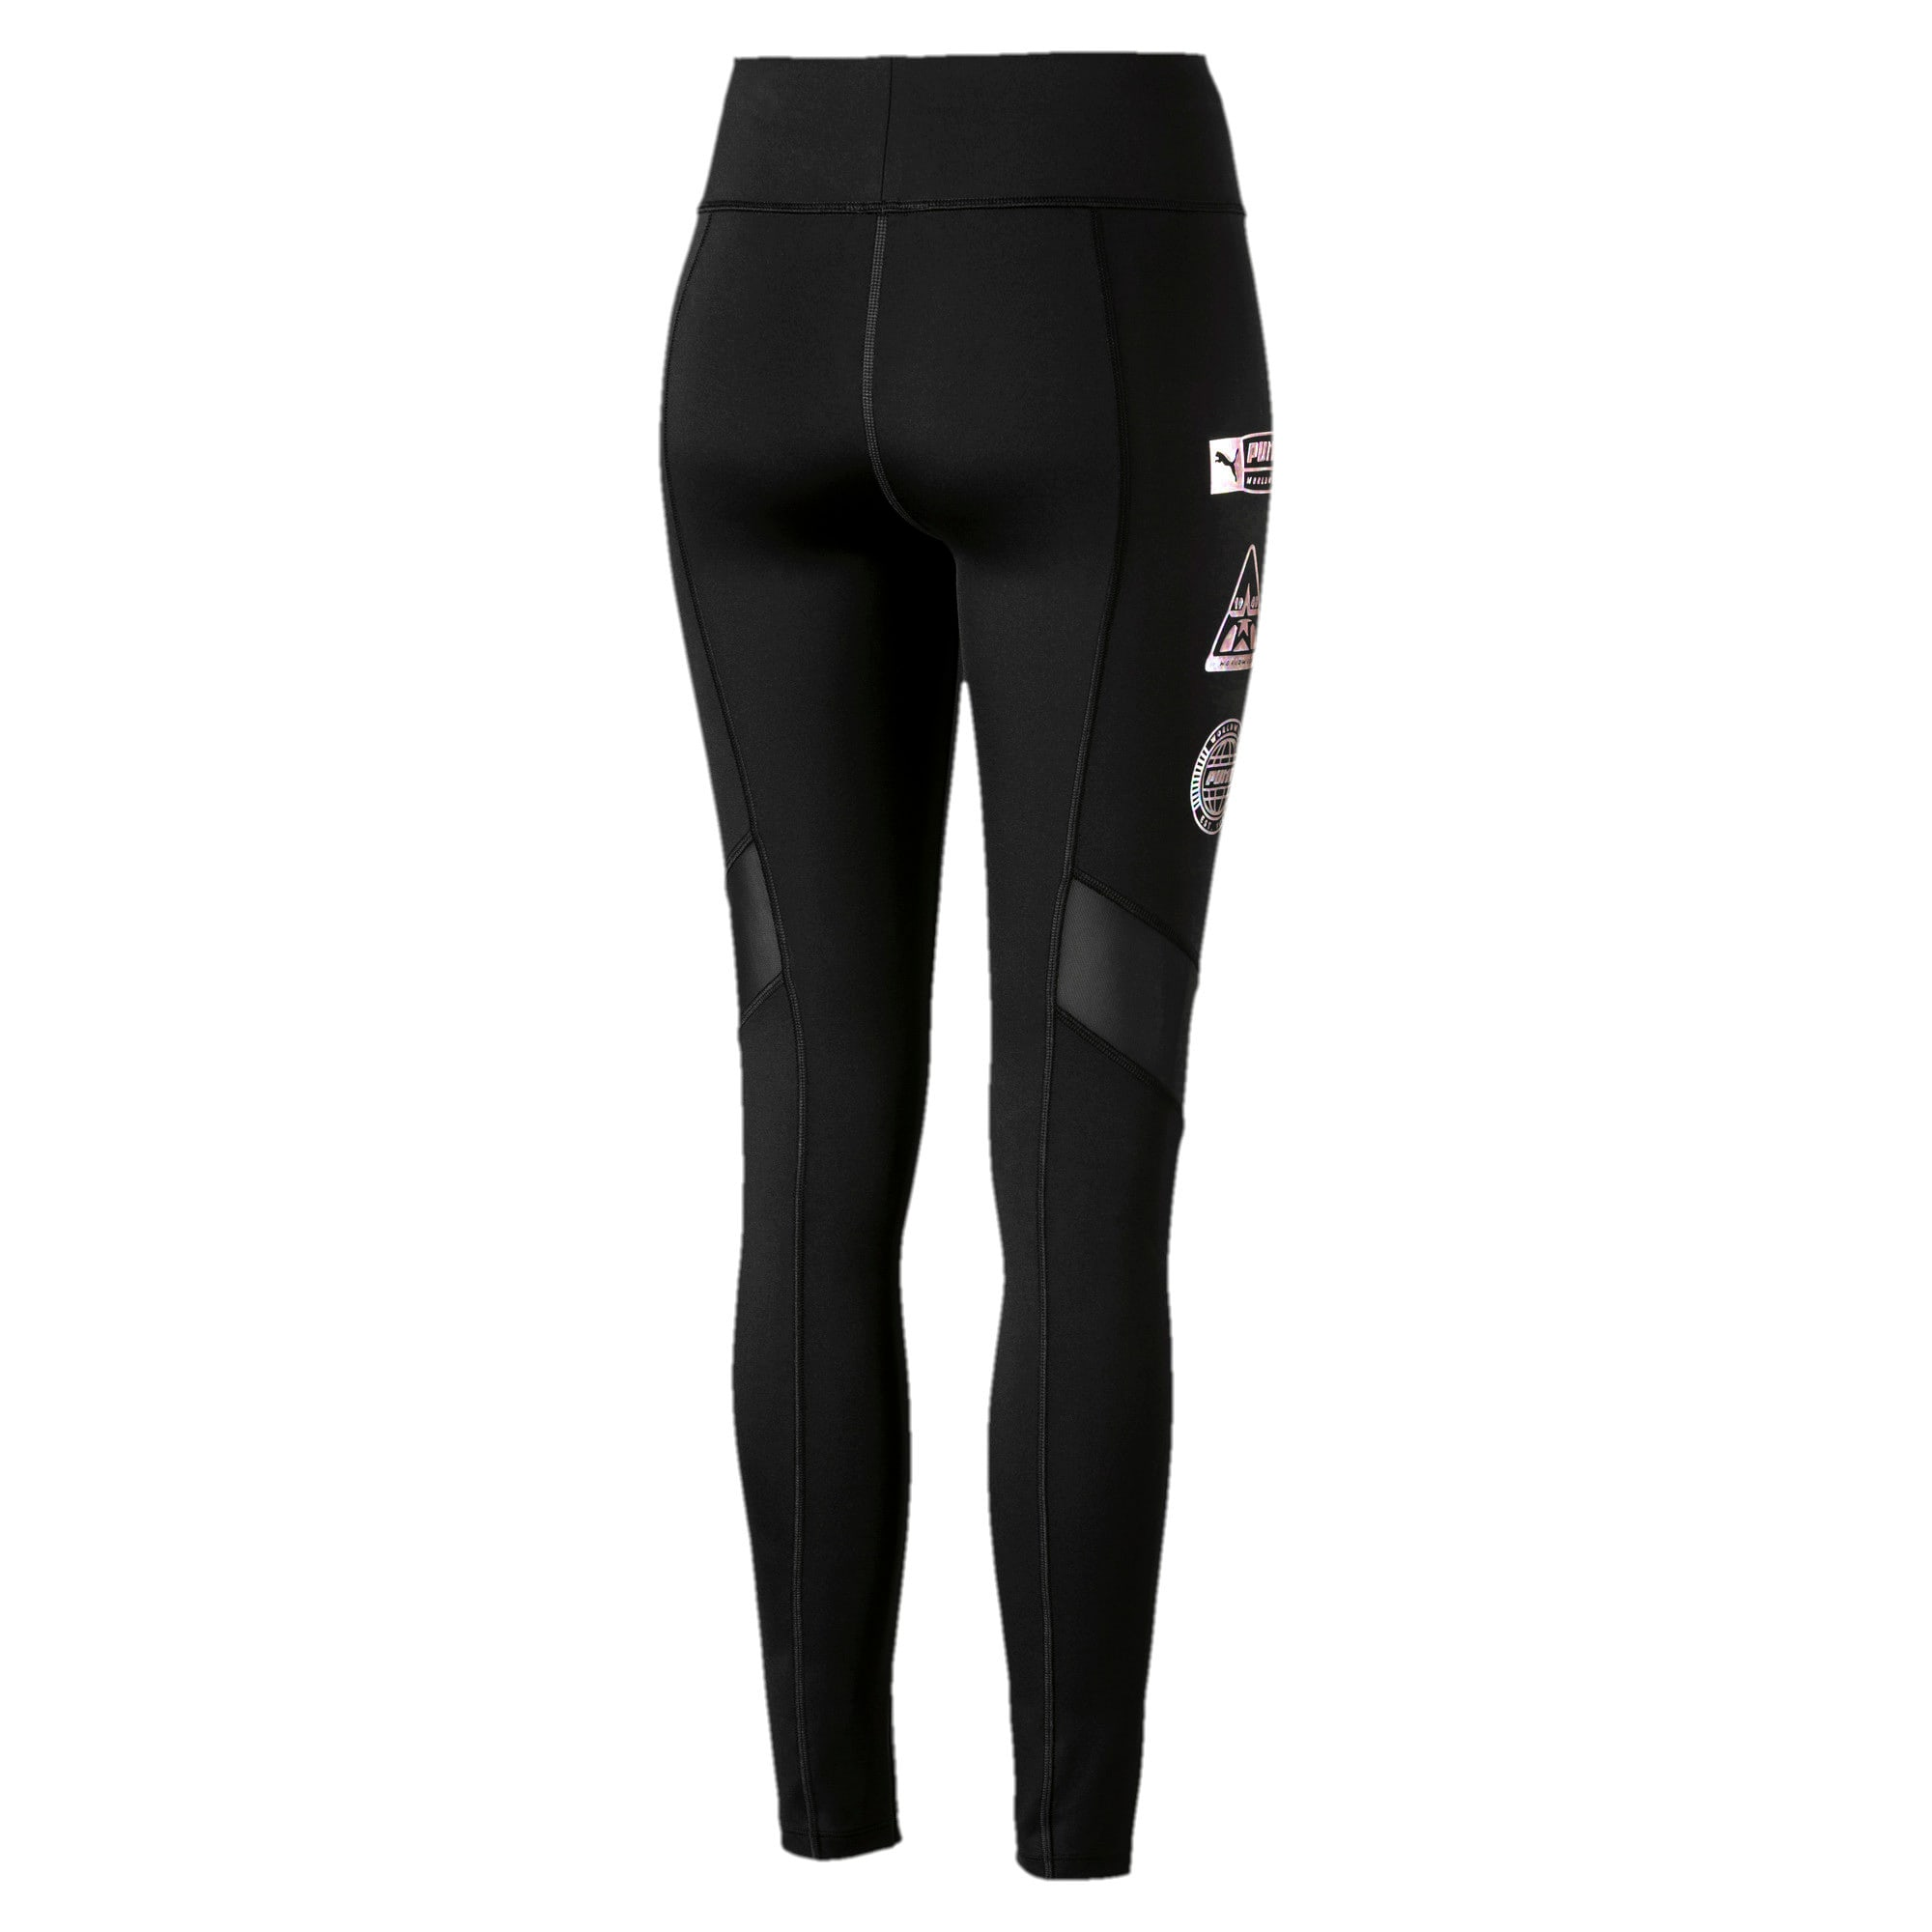 Thumbnail 5 of Trailblazer Women's Leggings, Puma Black, medium